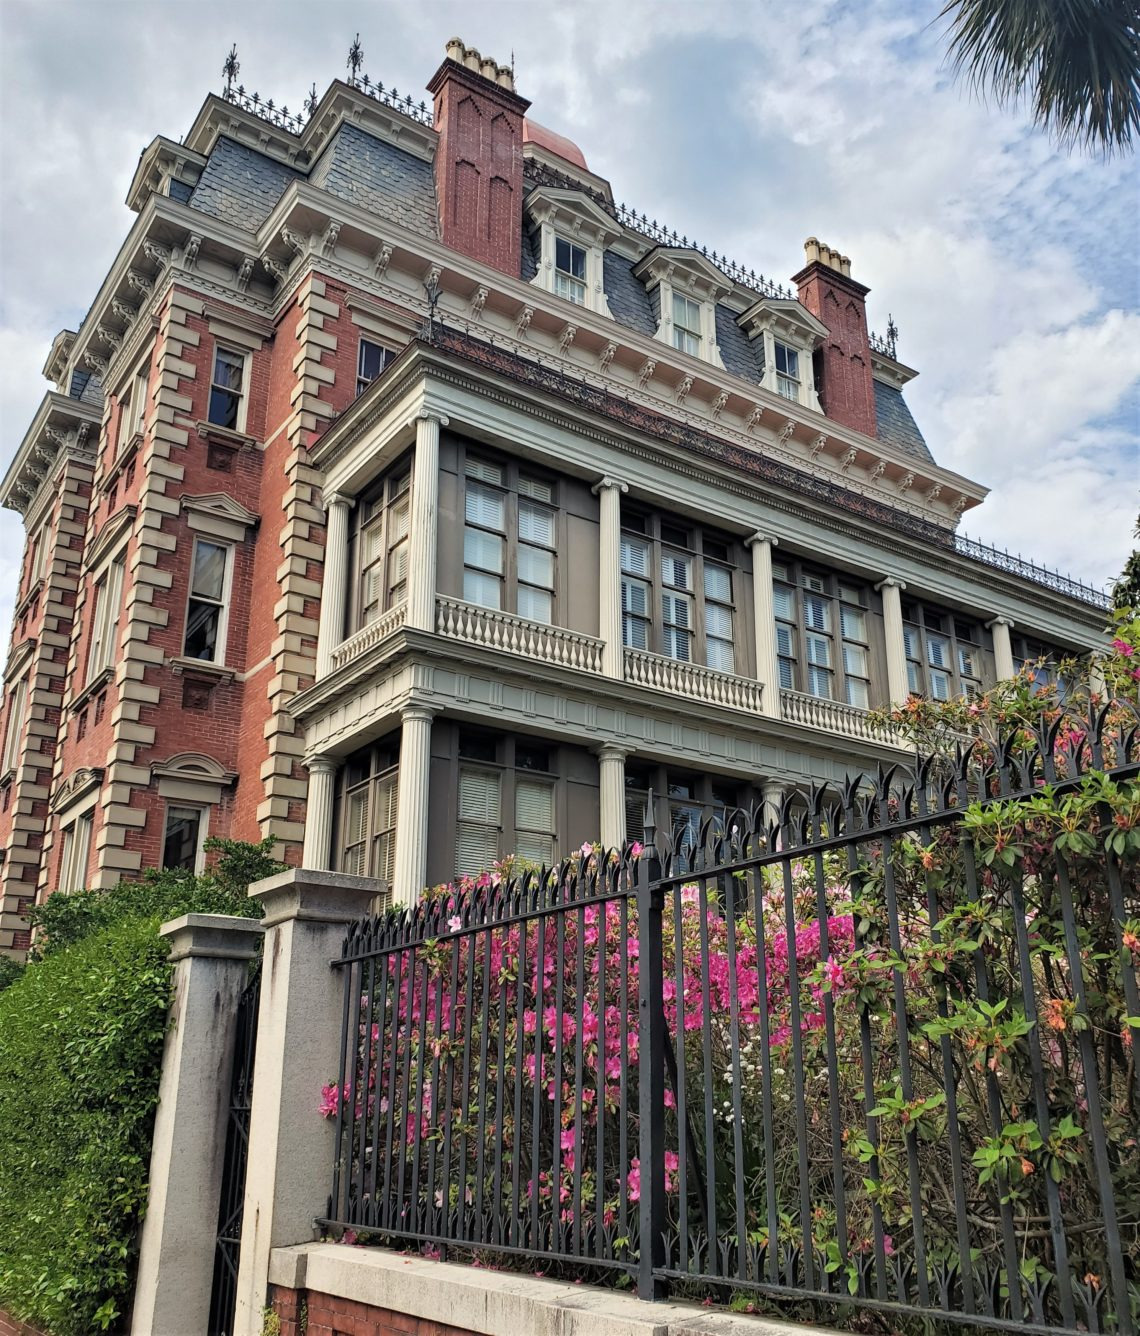 """The Wentworth Mansion, built c. 1886 as a private house on Wentworth Street, was once known as """"the finest home in all of Charleston."""" With about 24,000 square feet of space, it's an amazing building. You can stay there, as it is now a spectacular 5 Star hotel."""